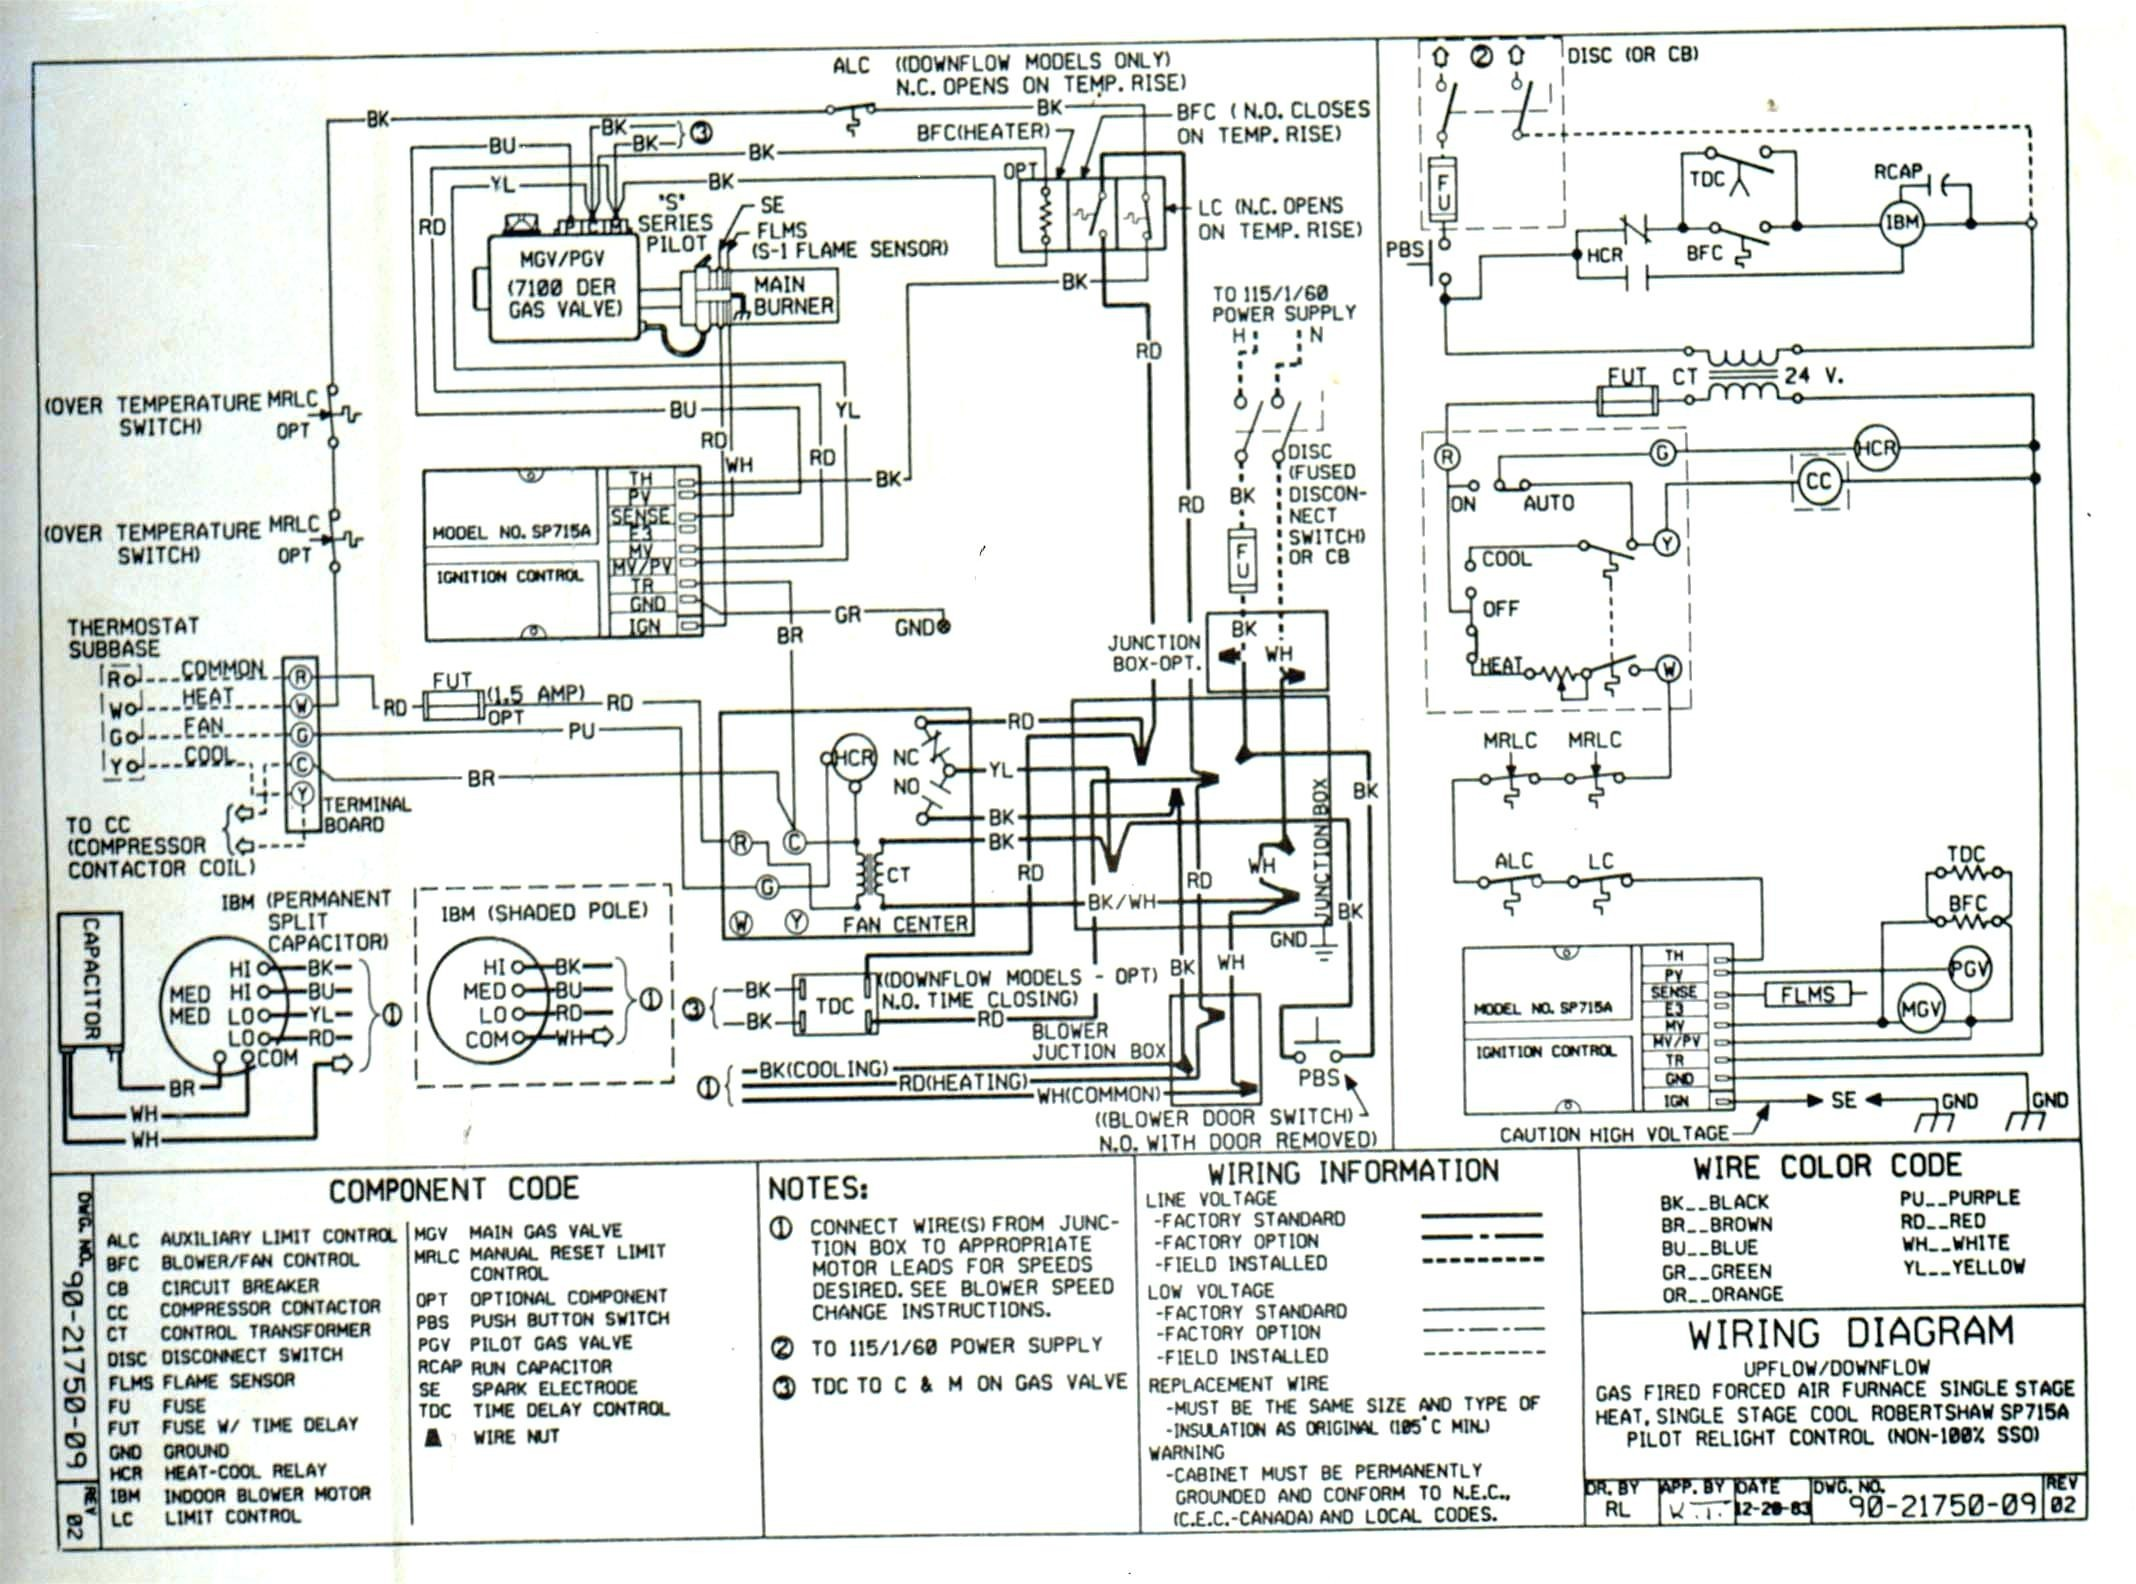 Trane Xl1200 Heat Pump Wiring Diagram Trane Weathertron thermostat Wiring Diagram Trane Wiring Diagram